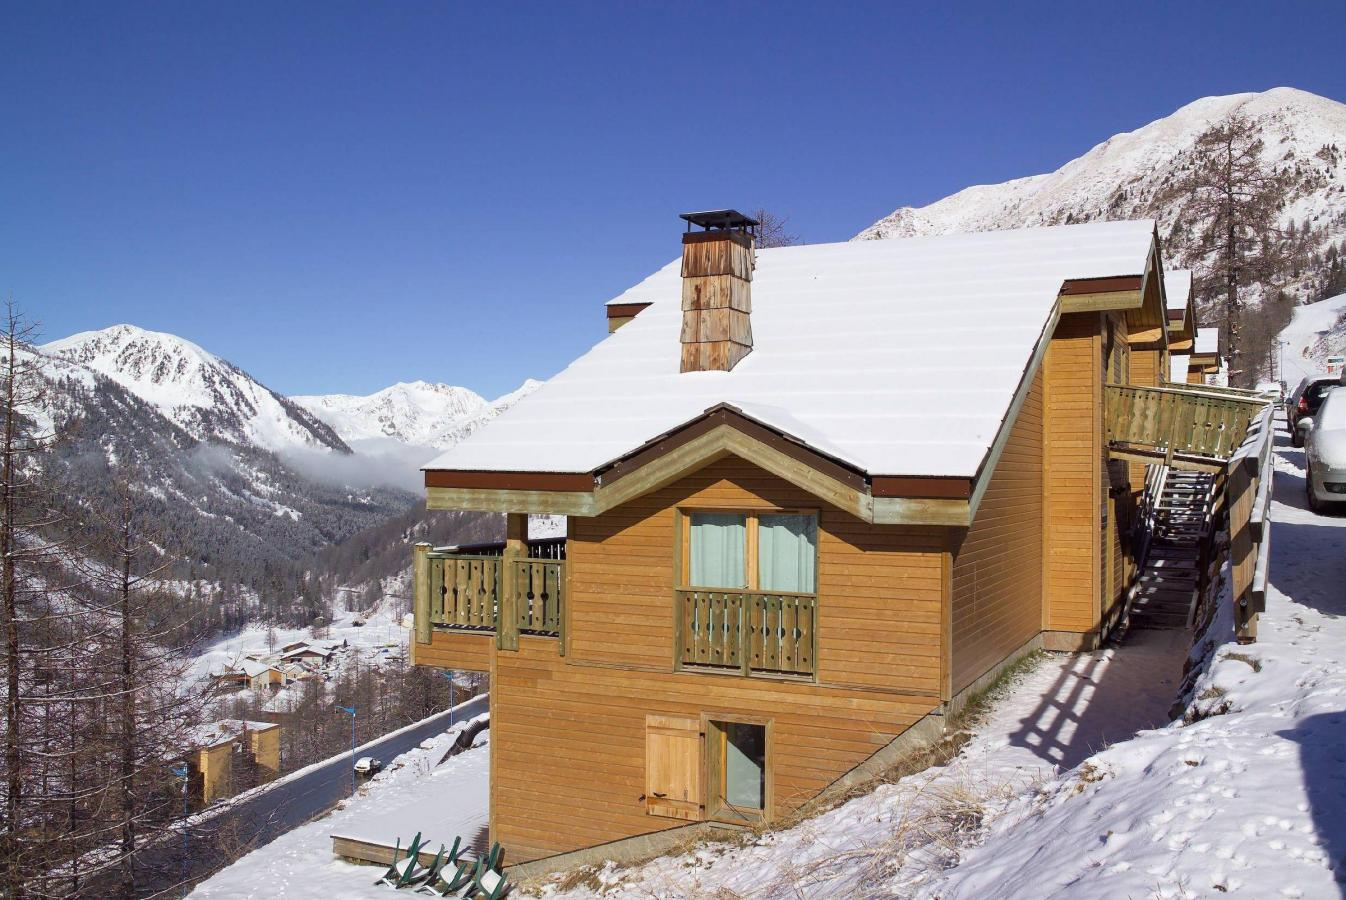 Chalet LES CHALETS D'ISOLA - Isola 2000 - Southern Alps